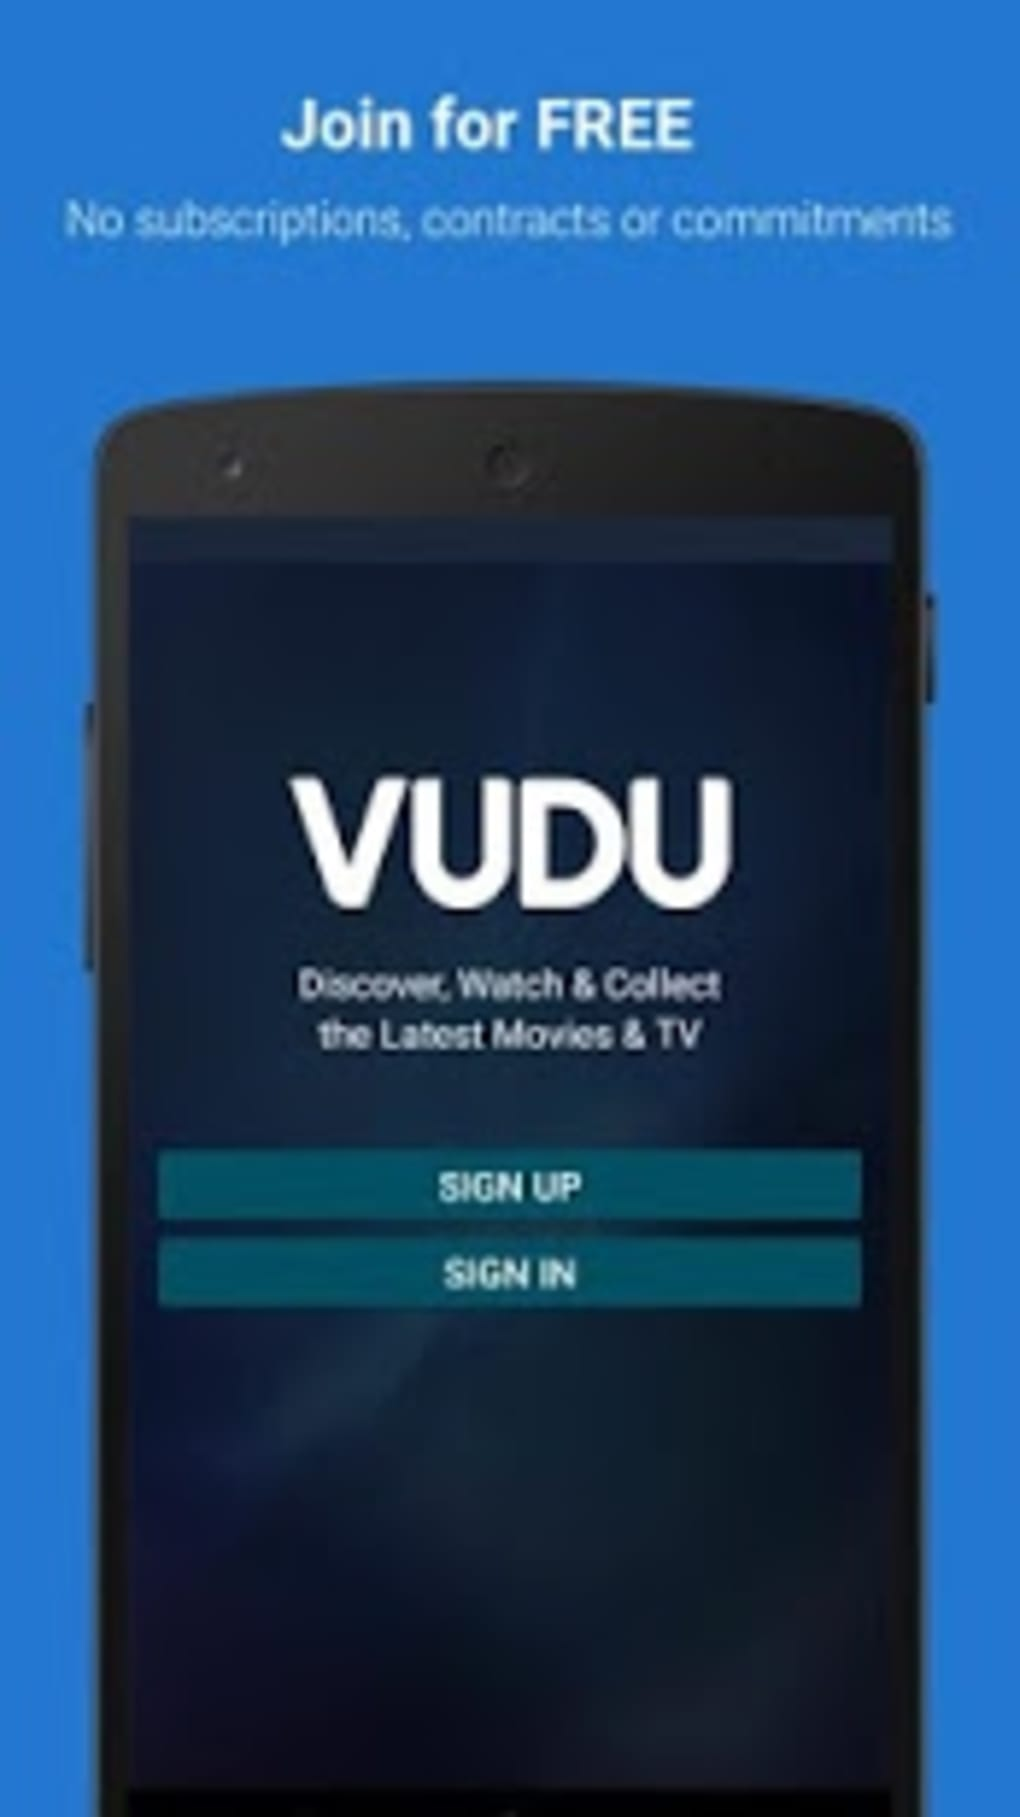 download vudu movies to android